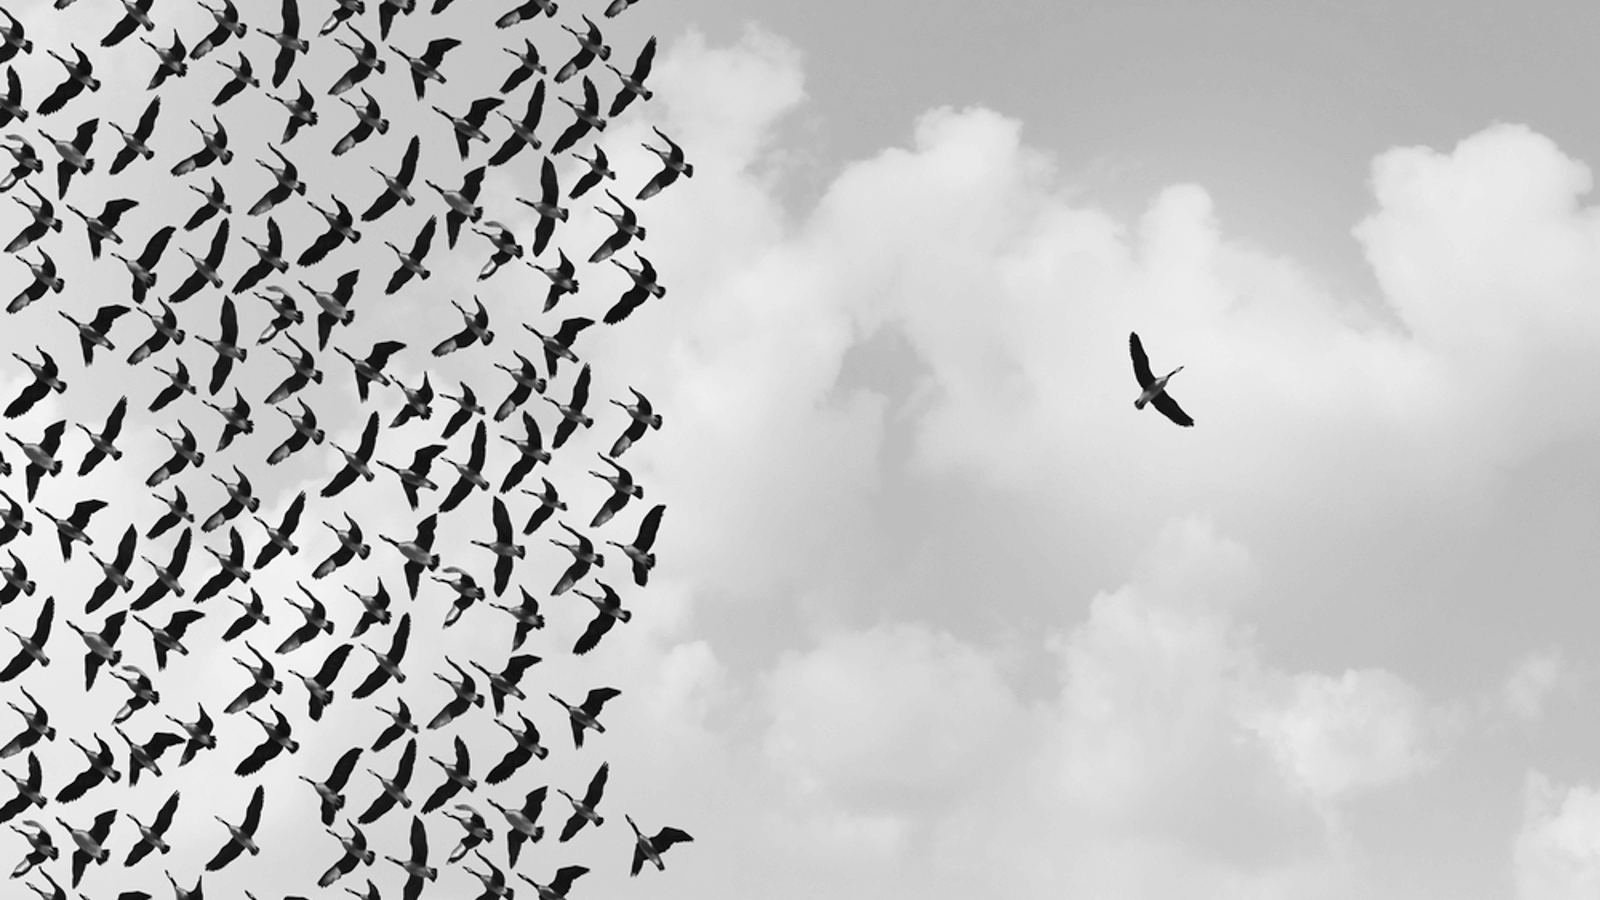 image: lone bird next to flock